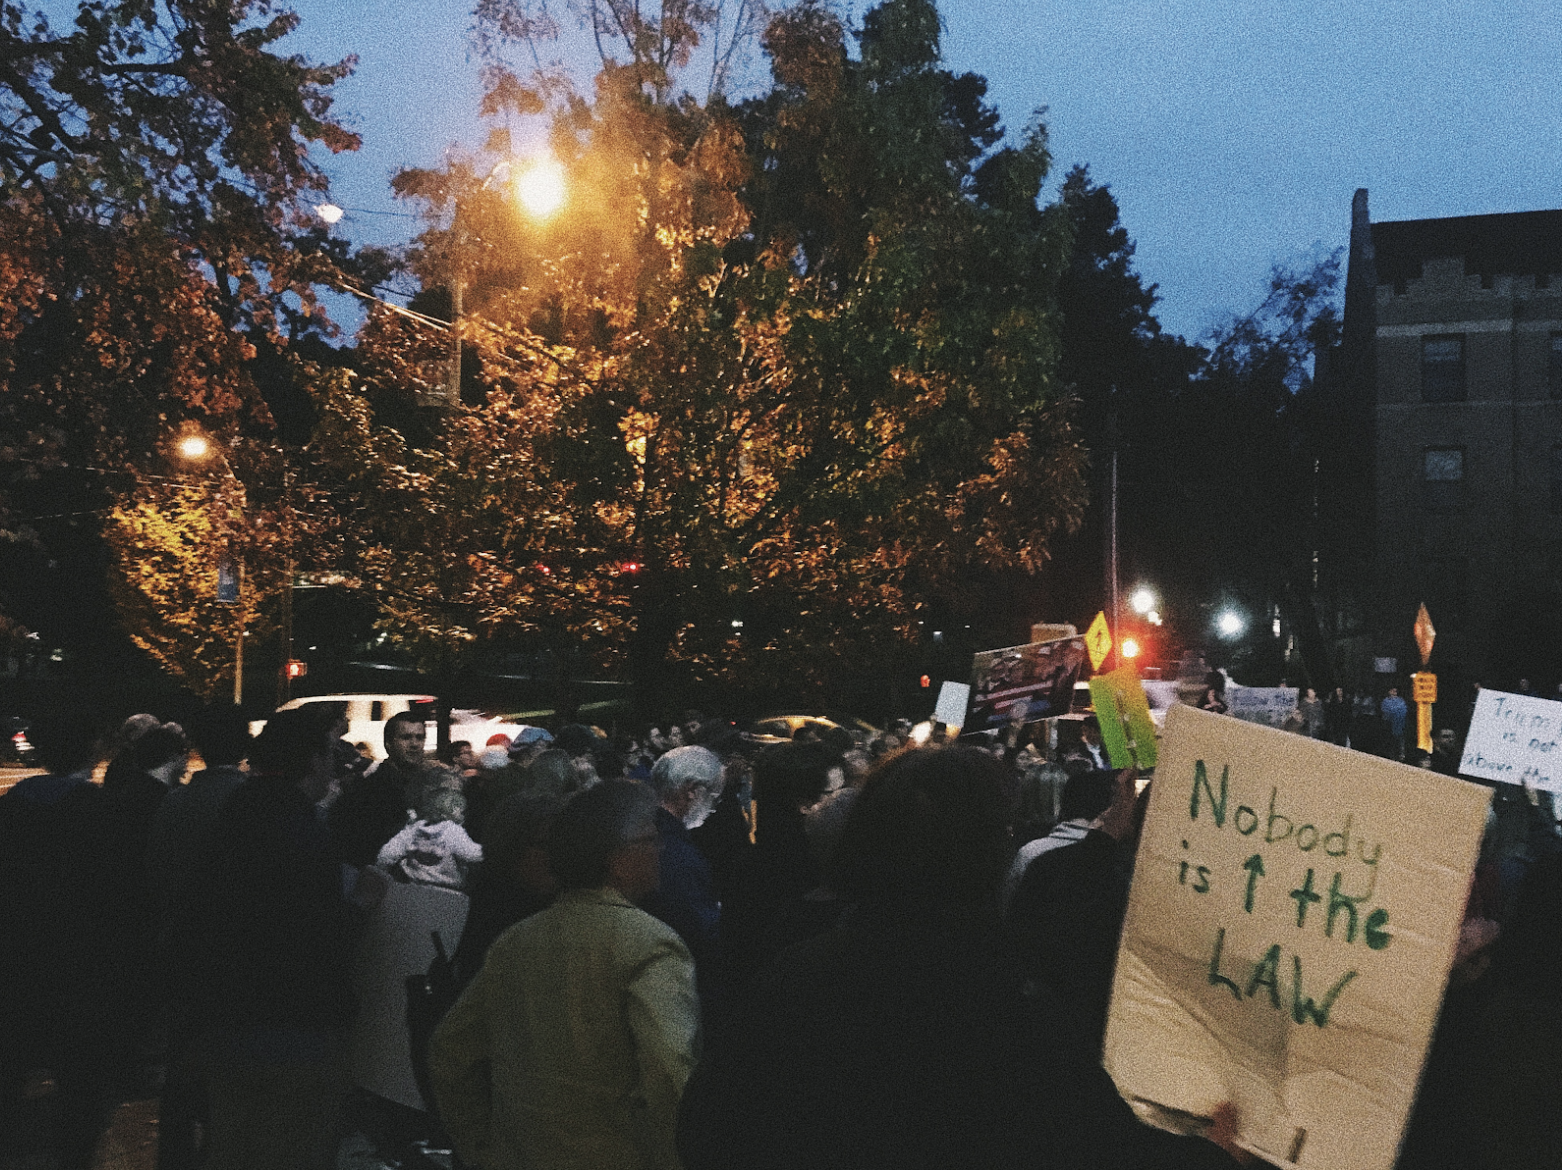 Demonstrators gather on Franklin Street last Thursday following Whitaker's appointment (Image: Nick Battaile)